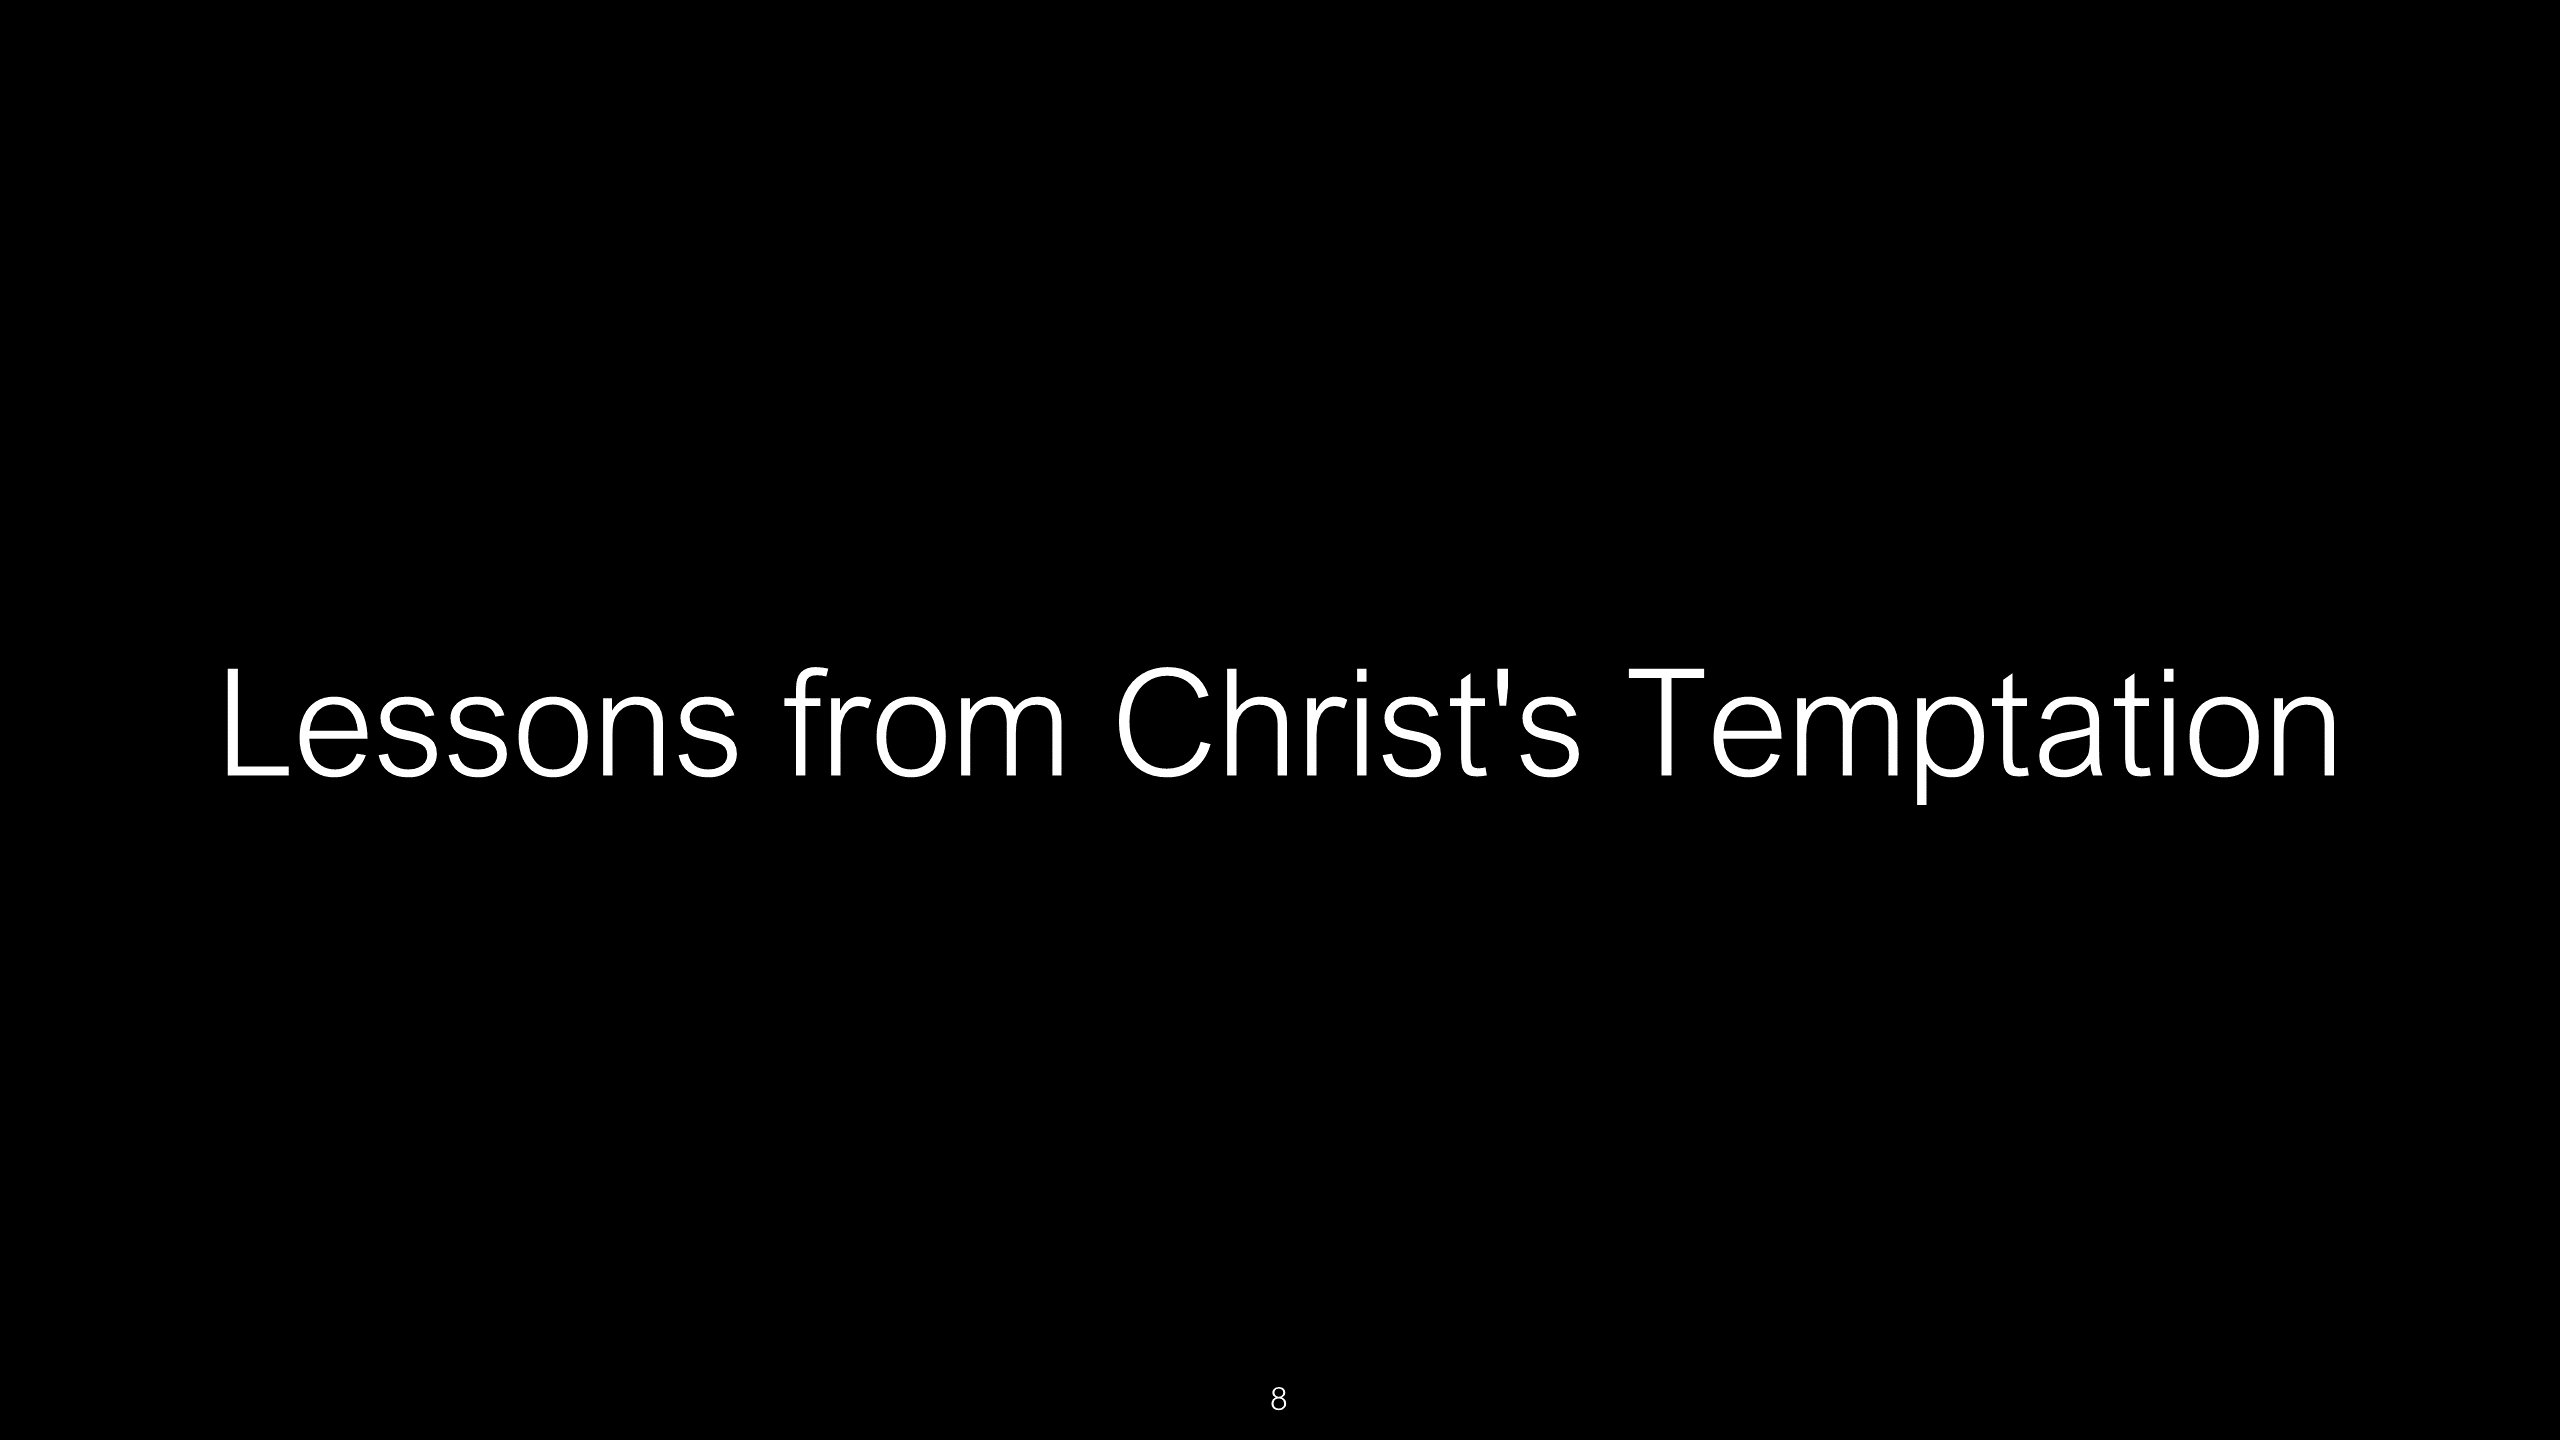 SWS-09 - Lessons from Christ's Temptation for Our Resisting the Devil's Attacks (8)